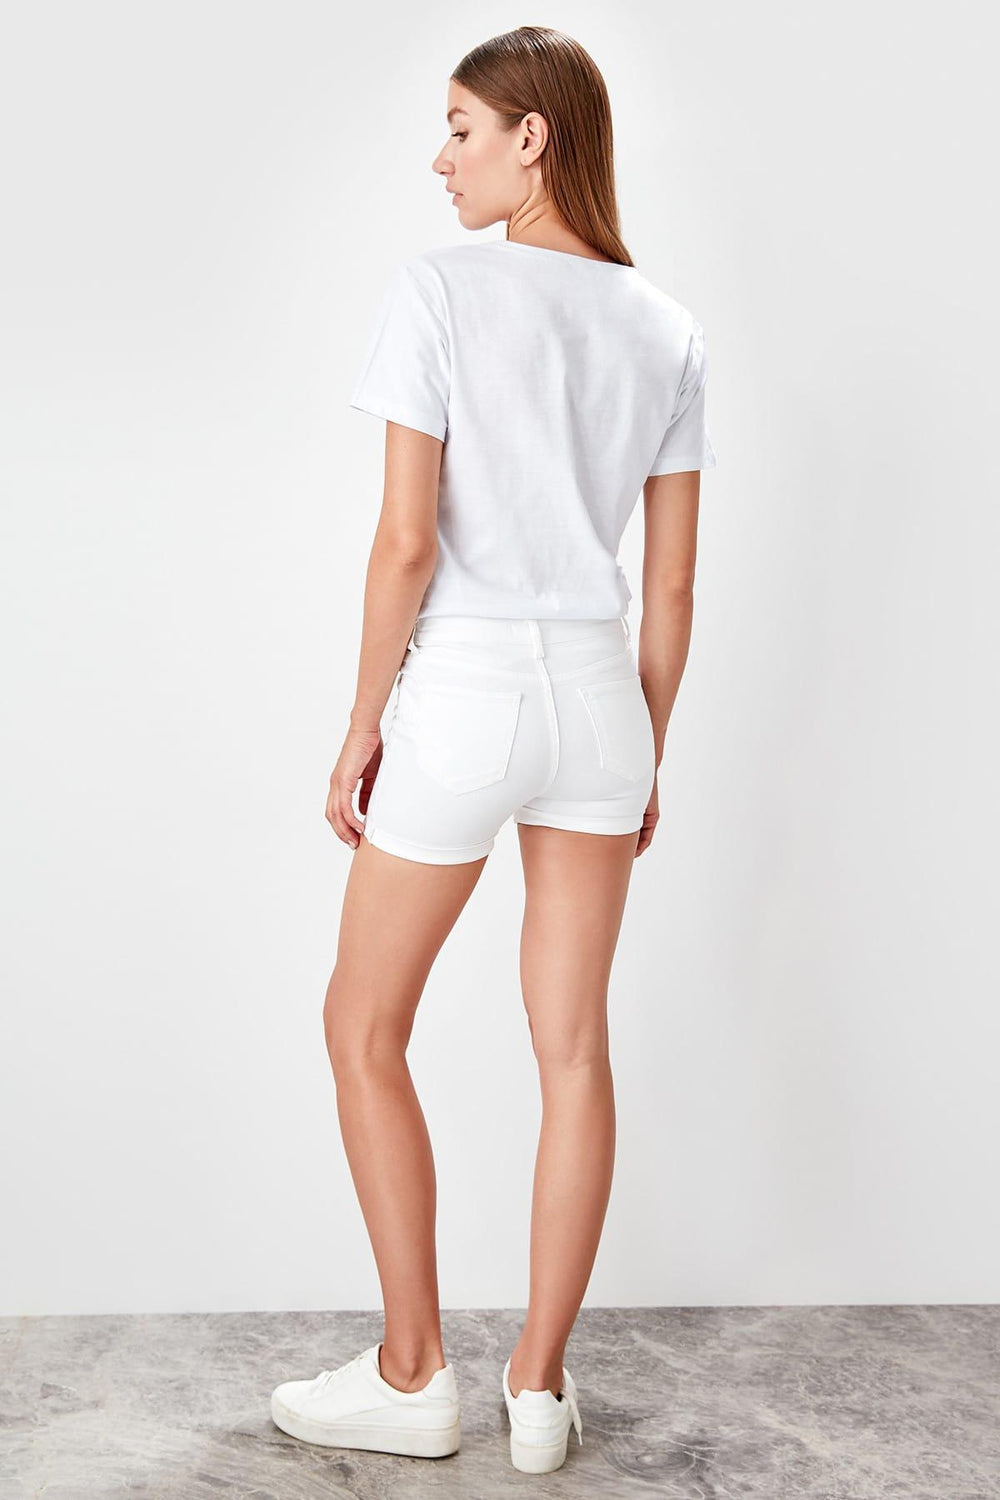 White Hight Waist Jegging Shorts - Top Maxy